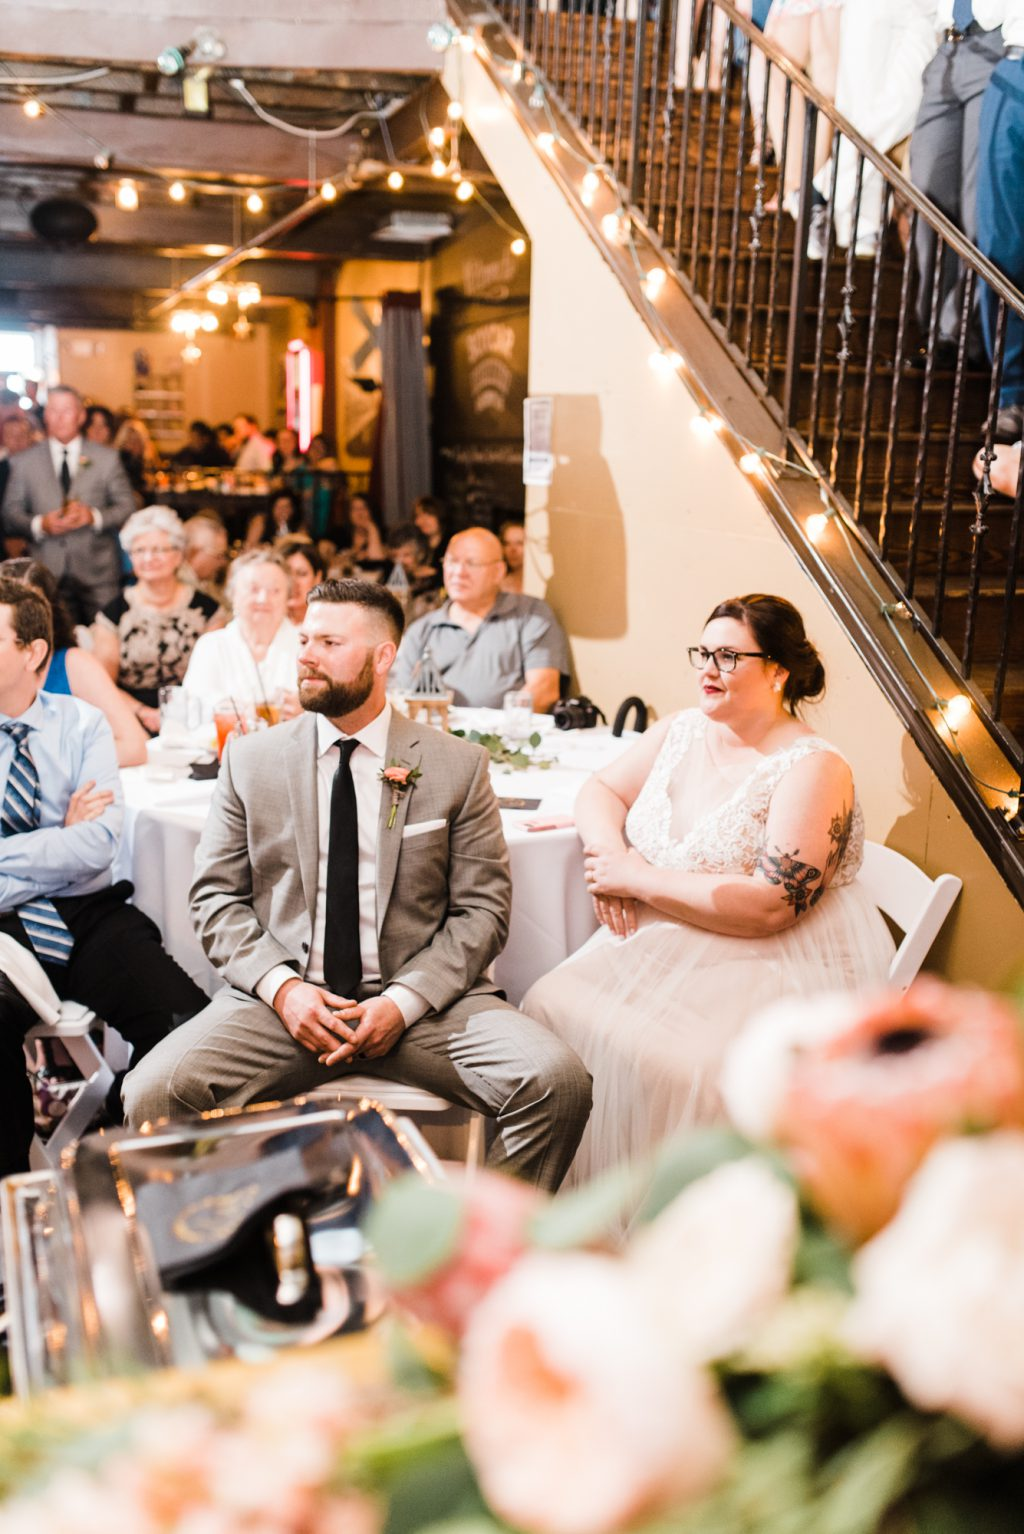 haley-richter-photo-west-chester-summer-wedding-boxcar-brewery-170